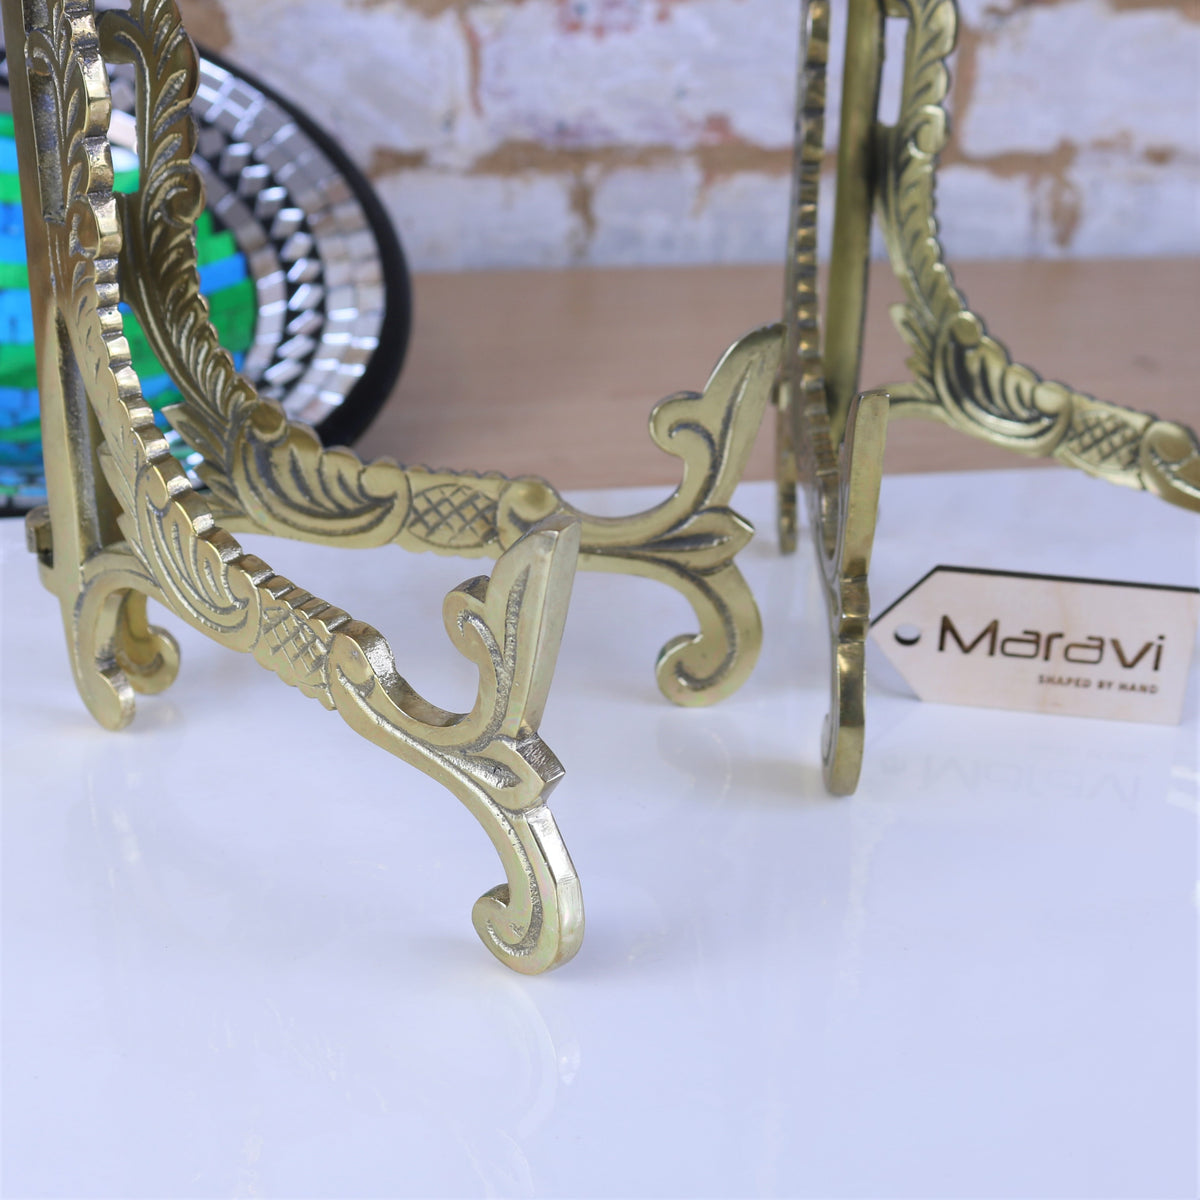 Kooni Set of 2 Gold Ornate Plate Stand - 3 Sizes